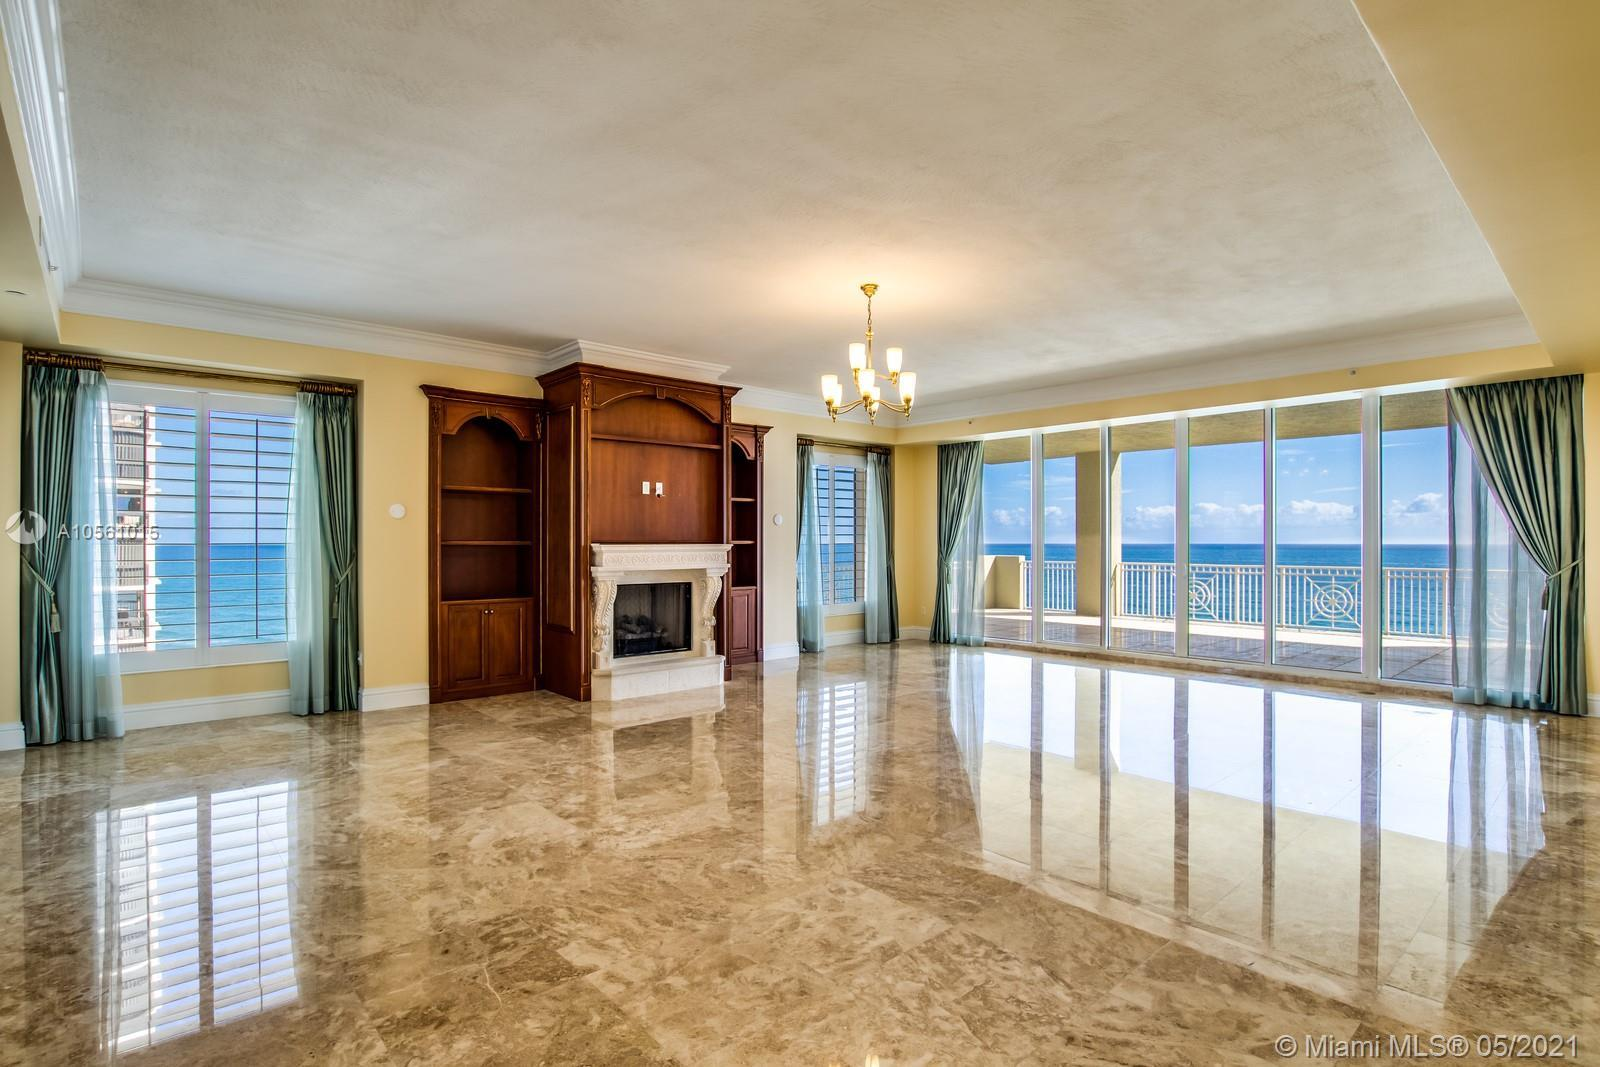 Breathtaking panoramic views of the ocean and intracoastal surround this luxurious 11th floor pentho